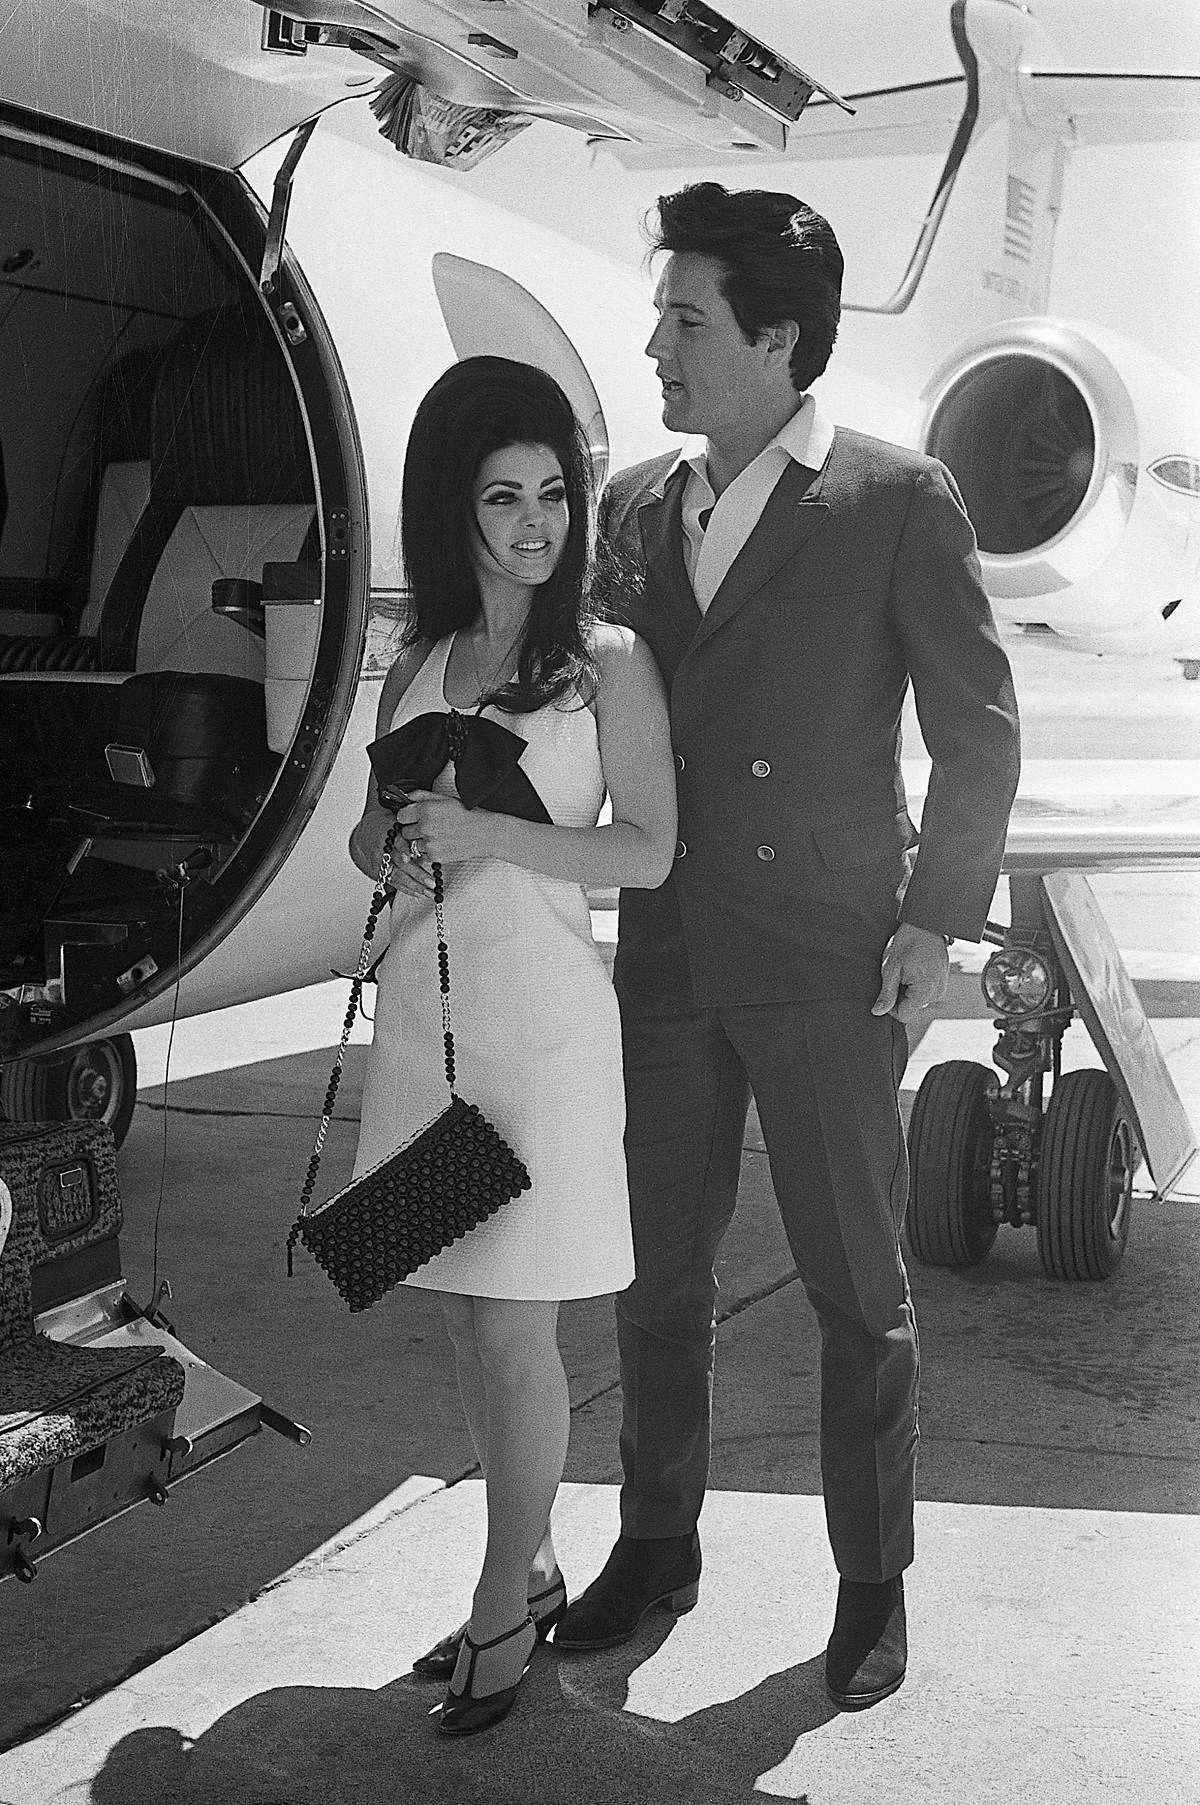 Elvis Presley and his bride, Priscilla Ann Beaulieu smile happily as they prepare to board a chartered jet airplane after their marriage at the Aladdin Hotel in 1967